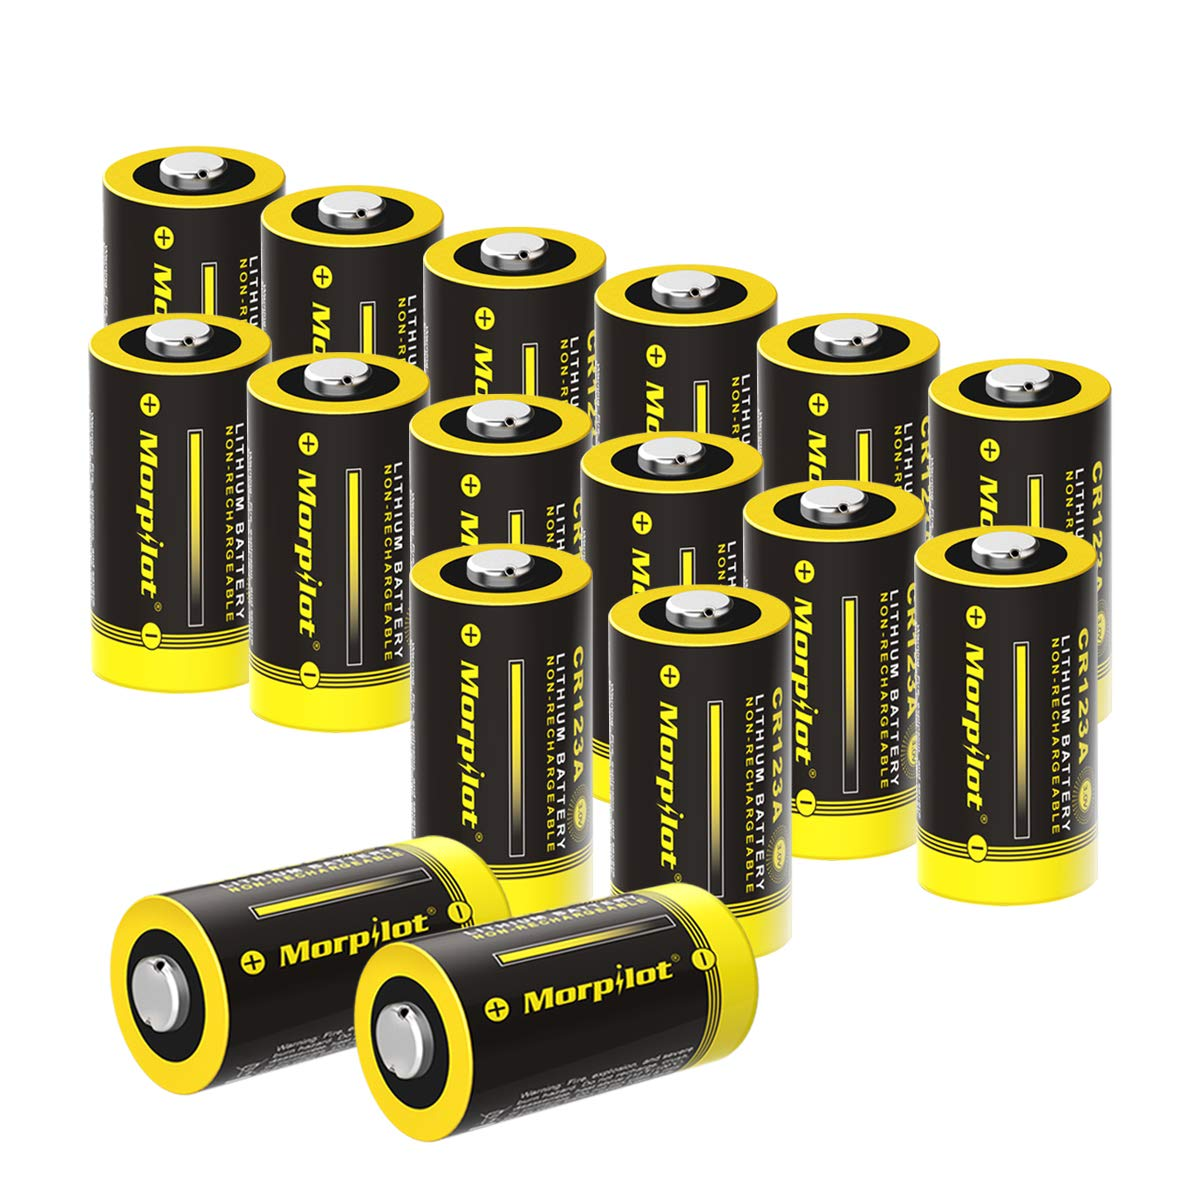 just as expected, good batteries at the price